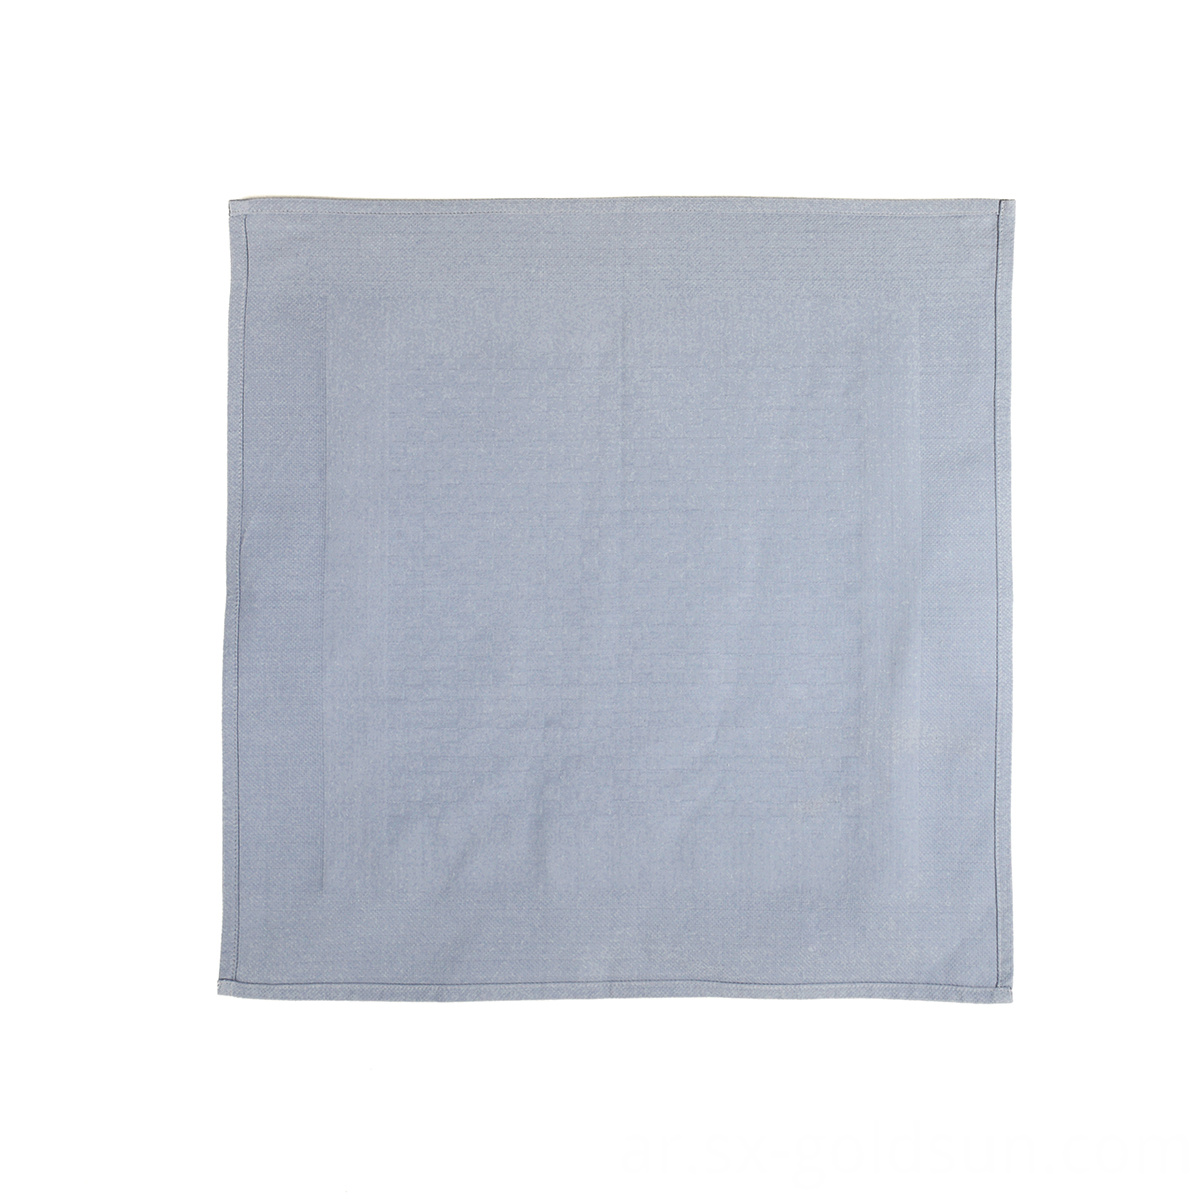 Home RPET TABLE CLOTH